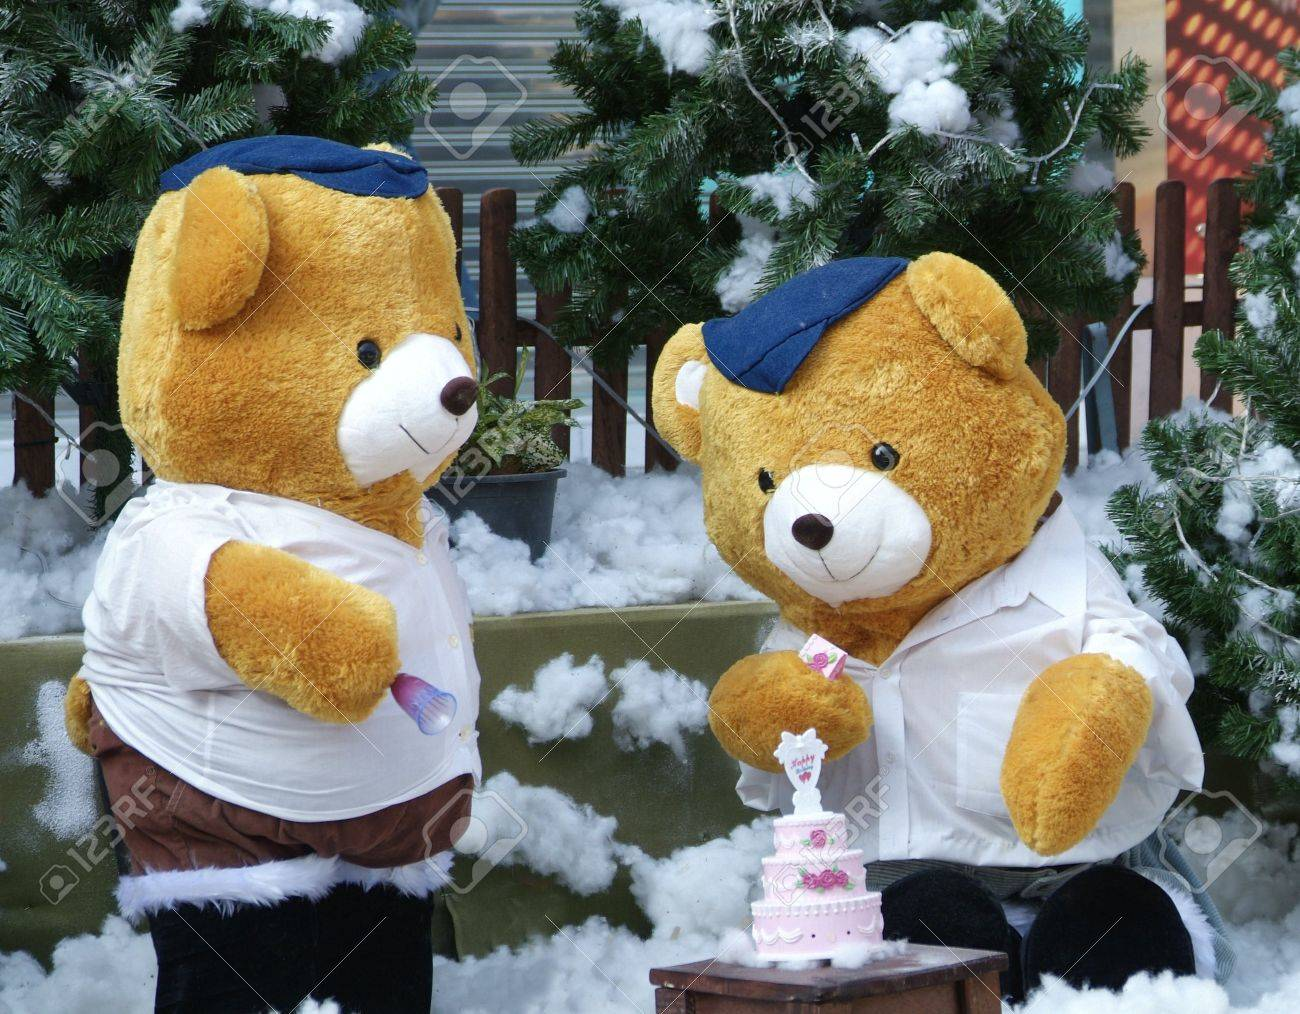 teddy bears having a birthday celebration with a pink cake in